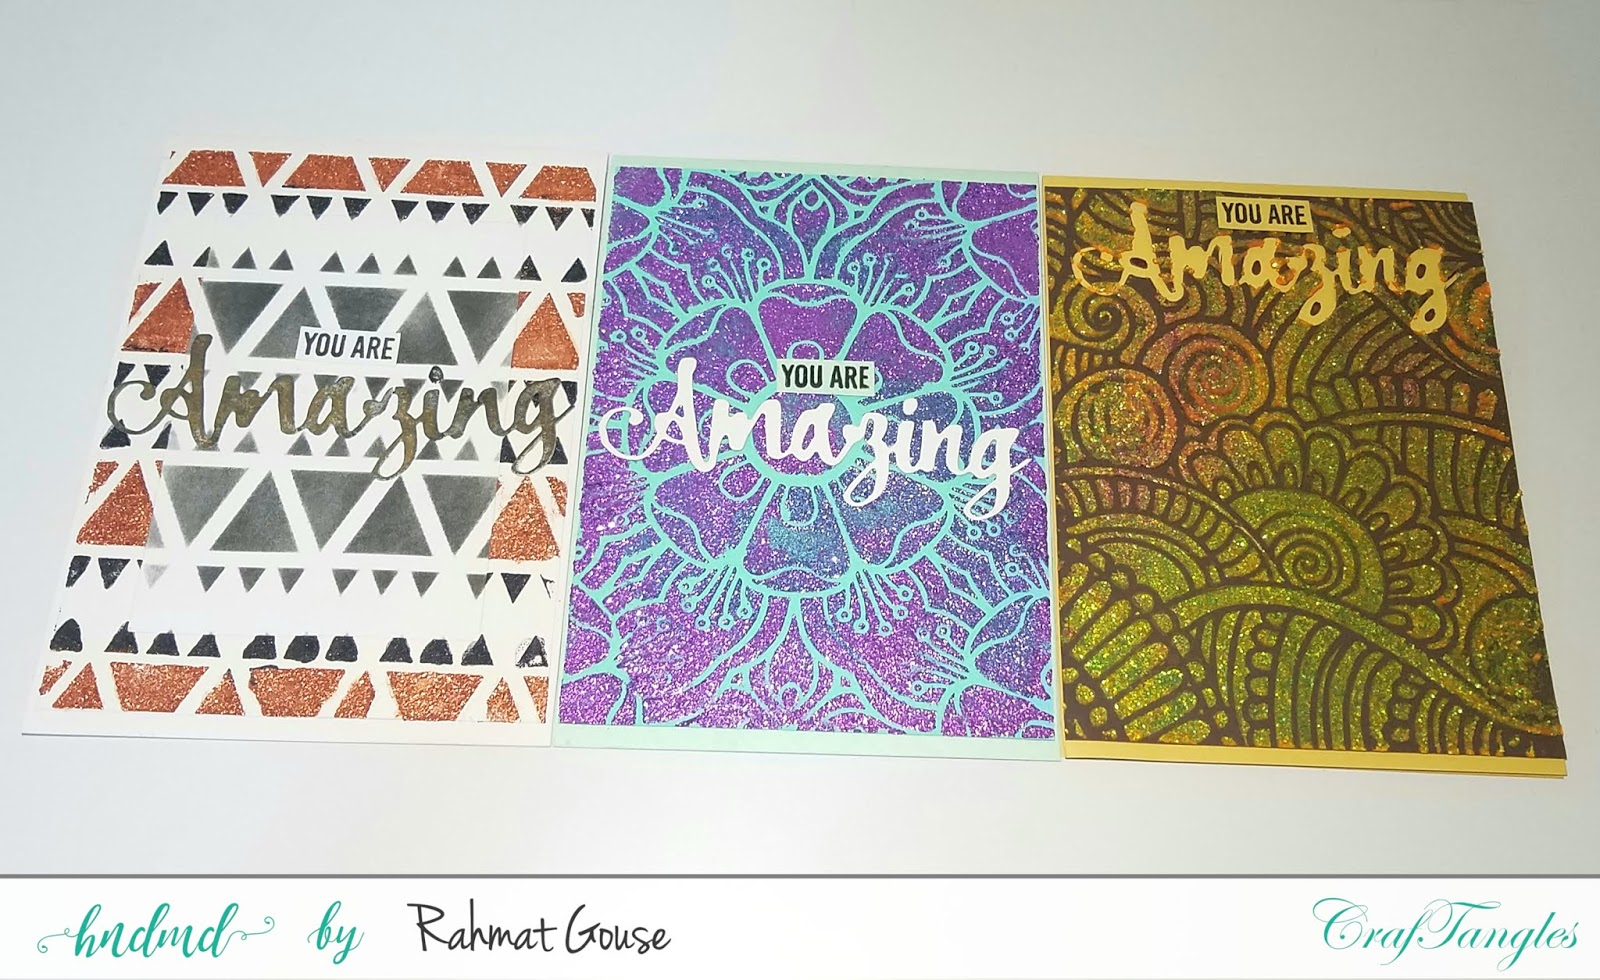 CrafTangles Challenge for the month - January 2019 4